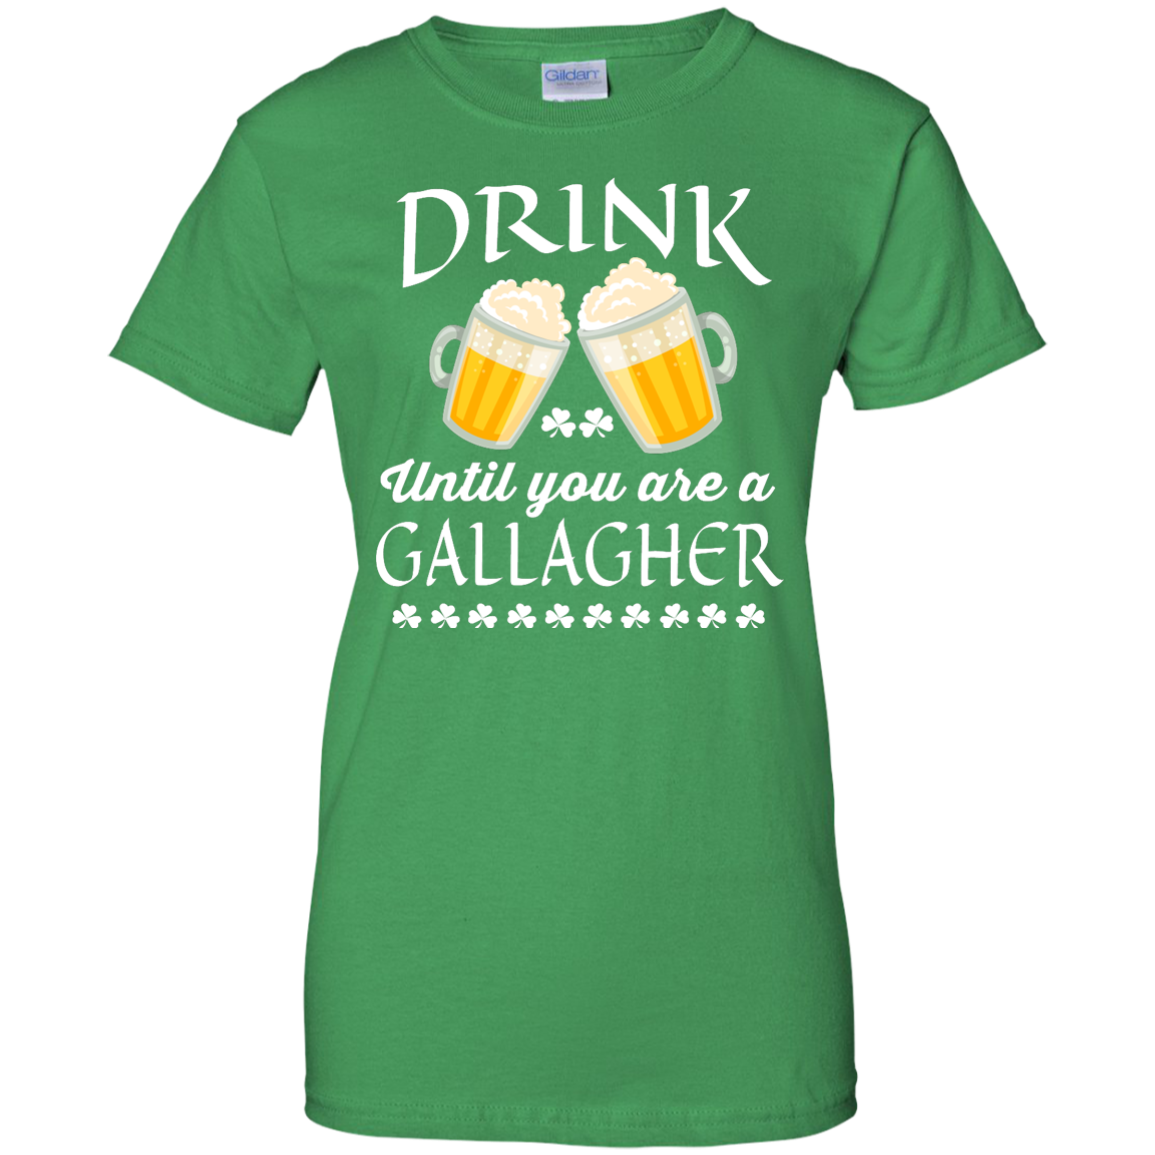 Irish Drinking Toast St Patrick S Day Shirt By: St Patrick's Day: Drink Until You Are A Gallagher Irish T